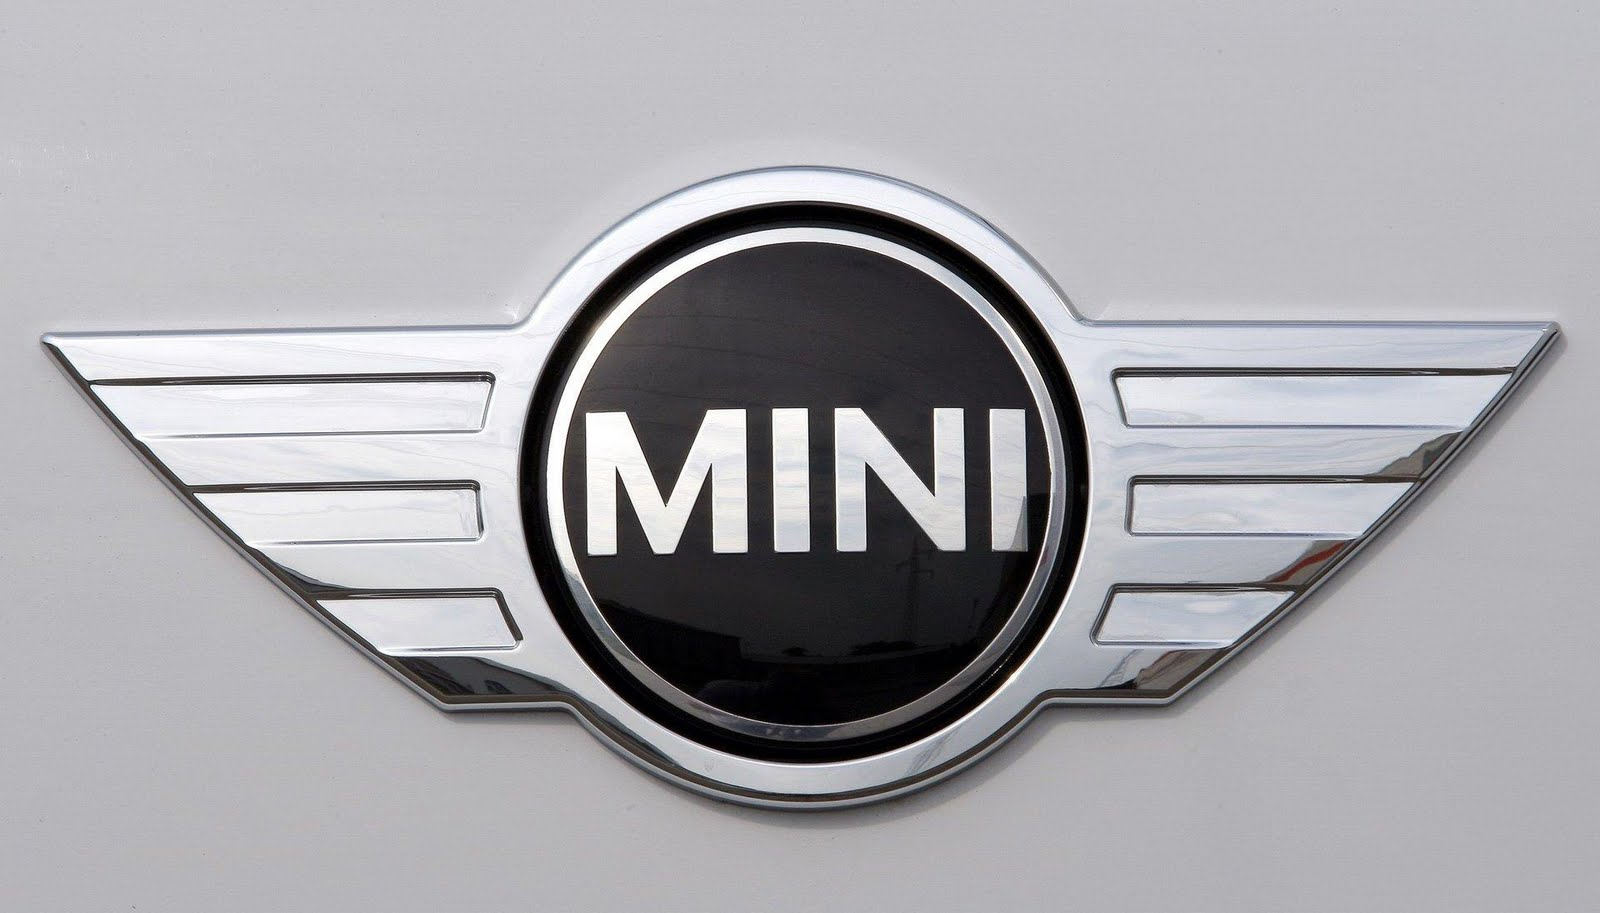 Mini Cooper Logo Mini Car Symbol Meaning And History Car Brand Names Com